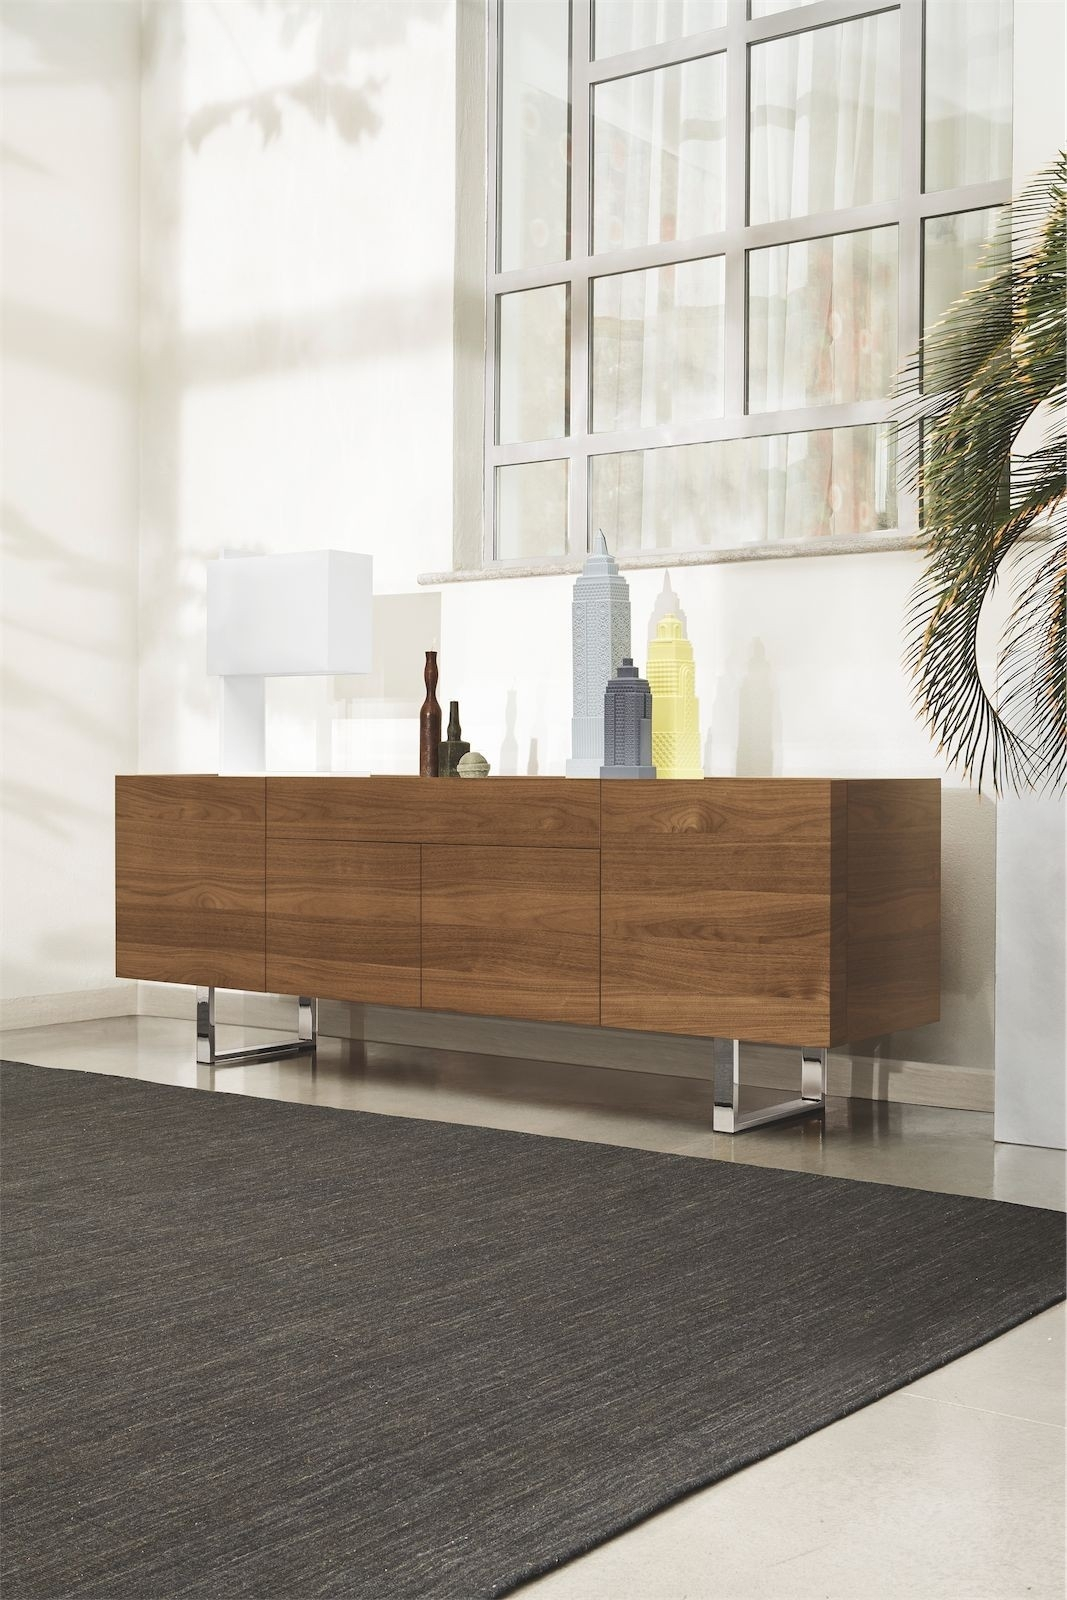 Calligaris Horizon 4 Door With Central Drawer Sideboard – Frank Mc Gowan intended for Metal Refinement 4 Door Sideboards (Image 9 of 30)